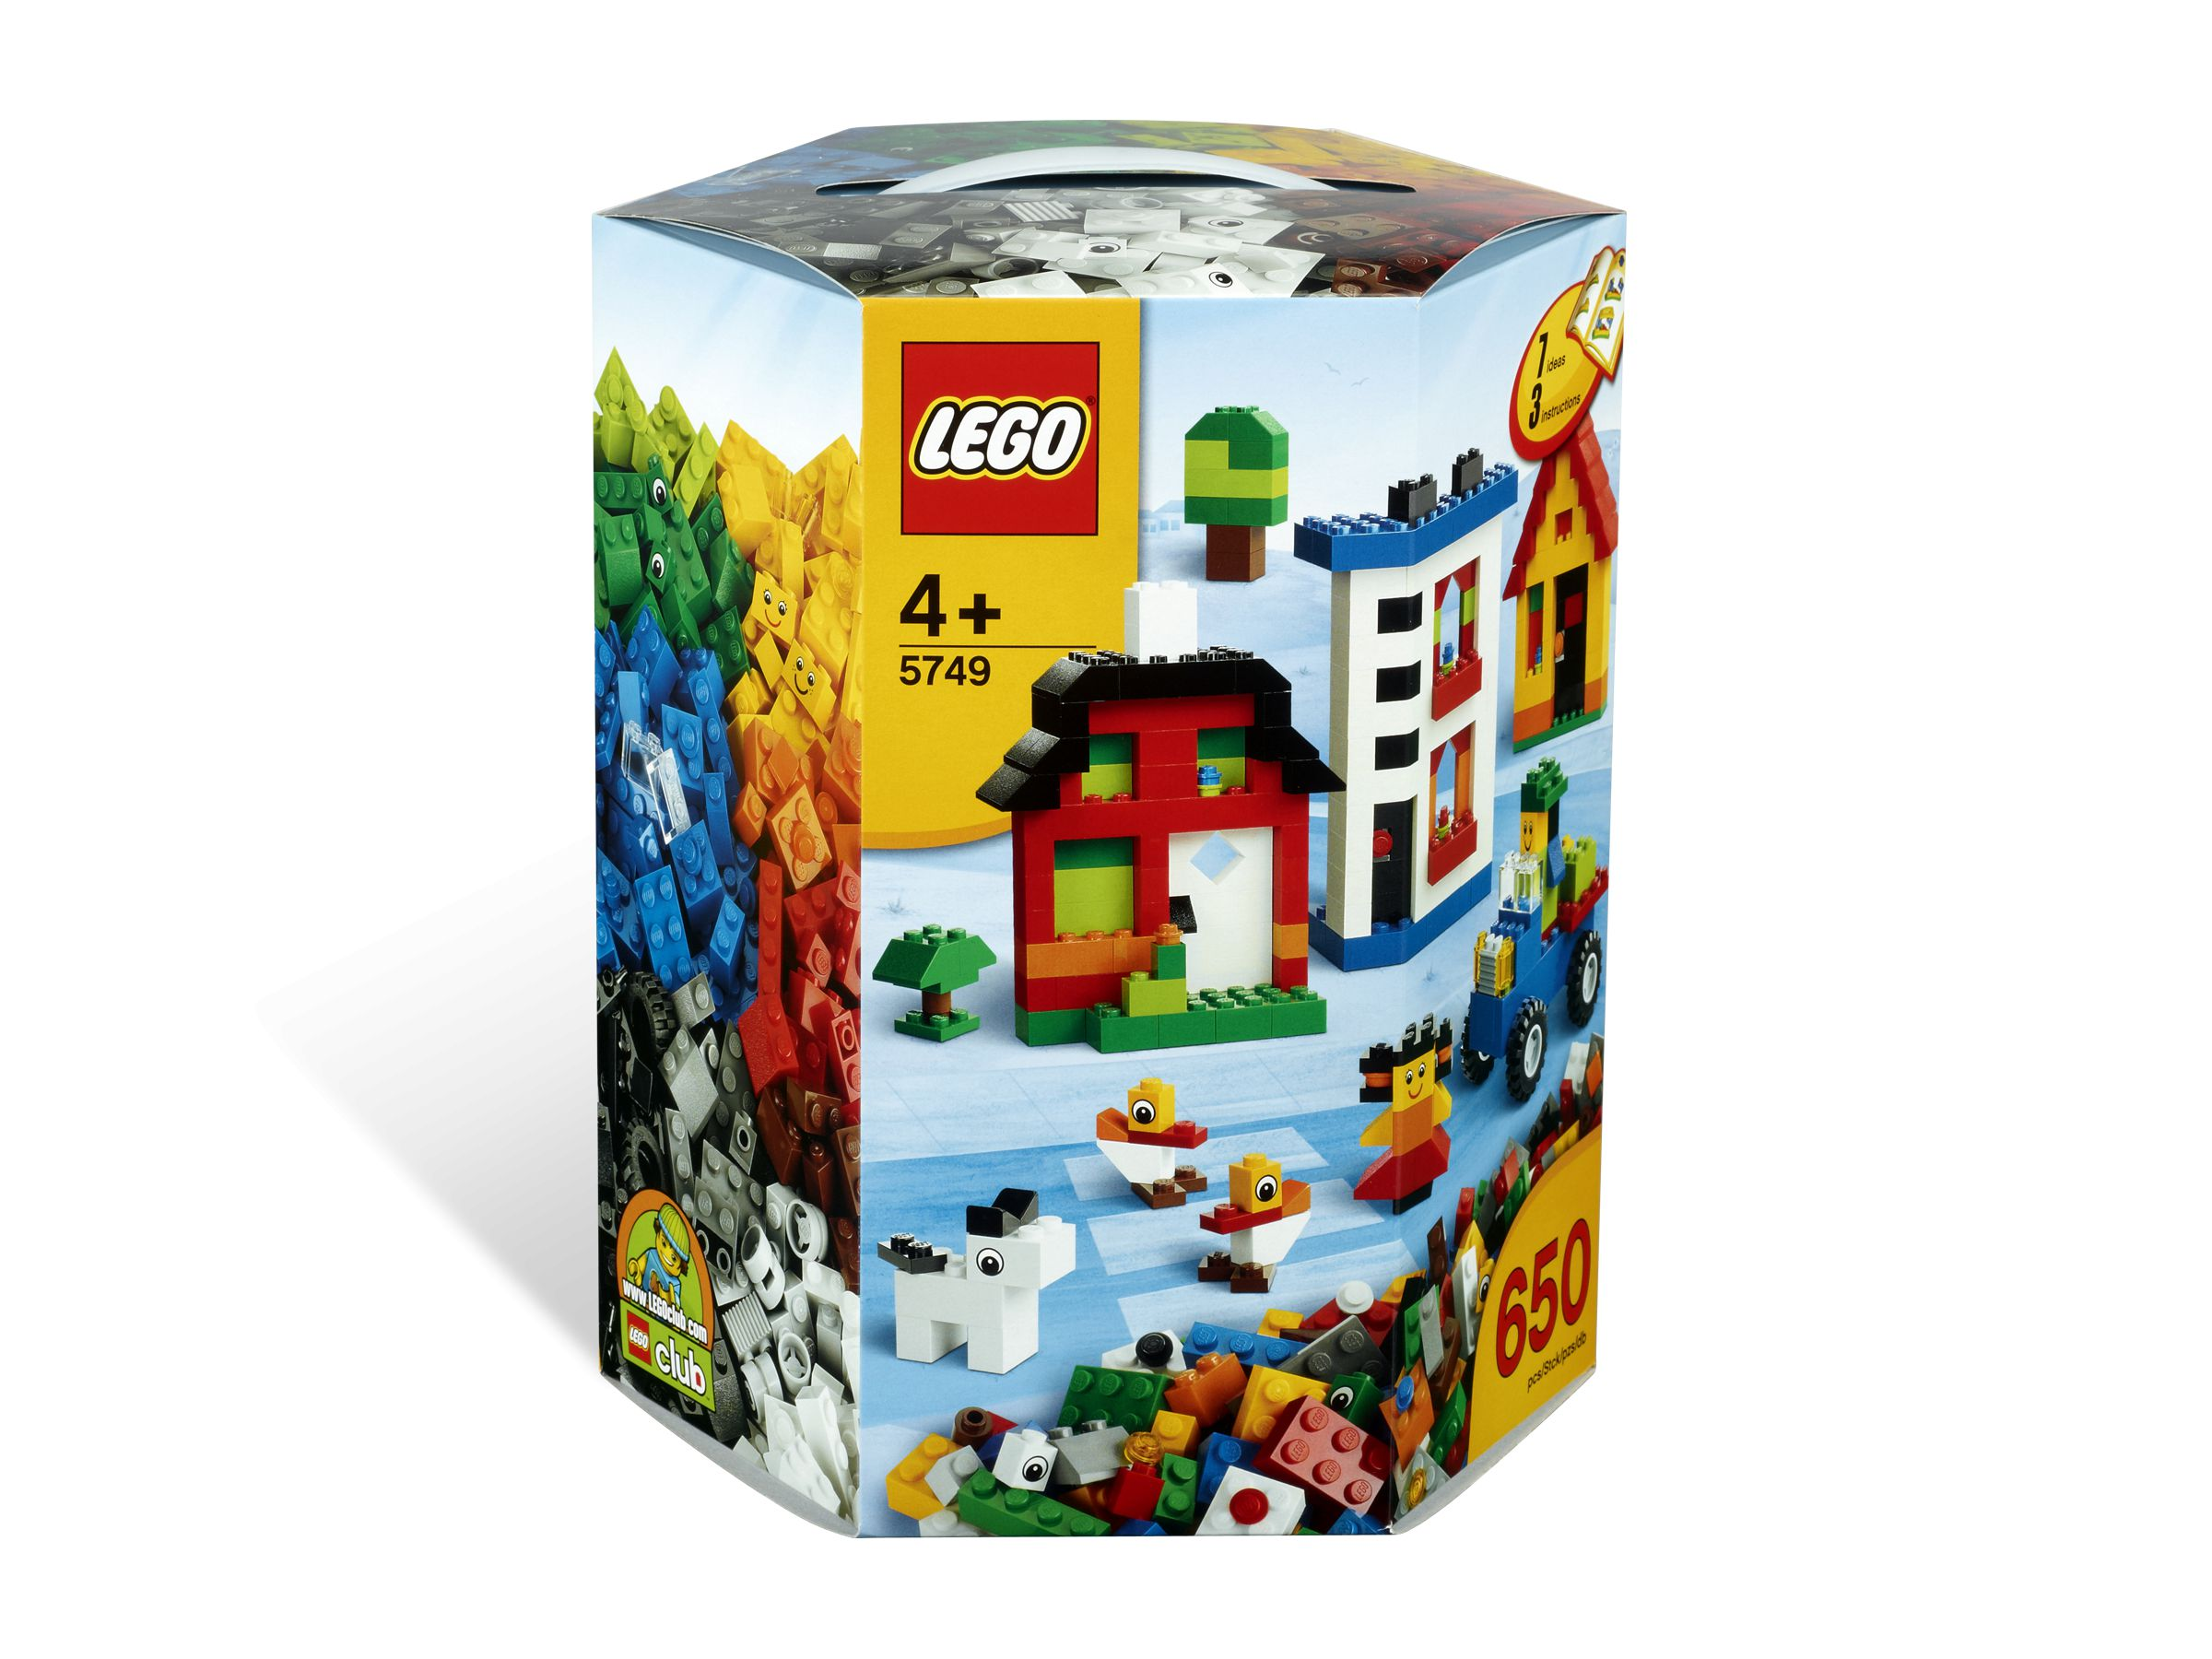 LEGO Bricks and More 5749 Creative Building Kit LEGO_5749_alt1.jpg